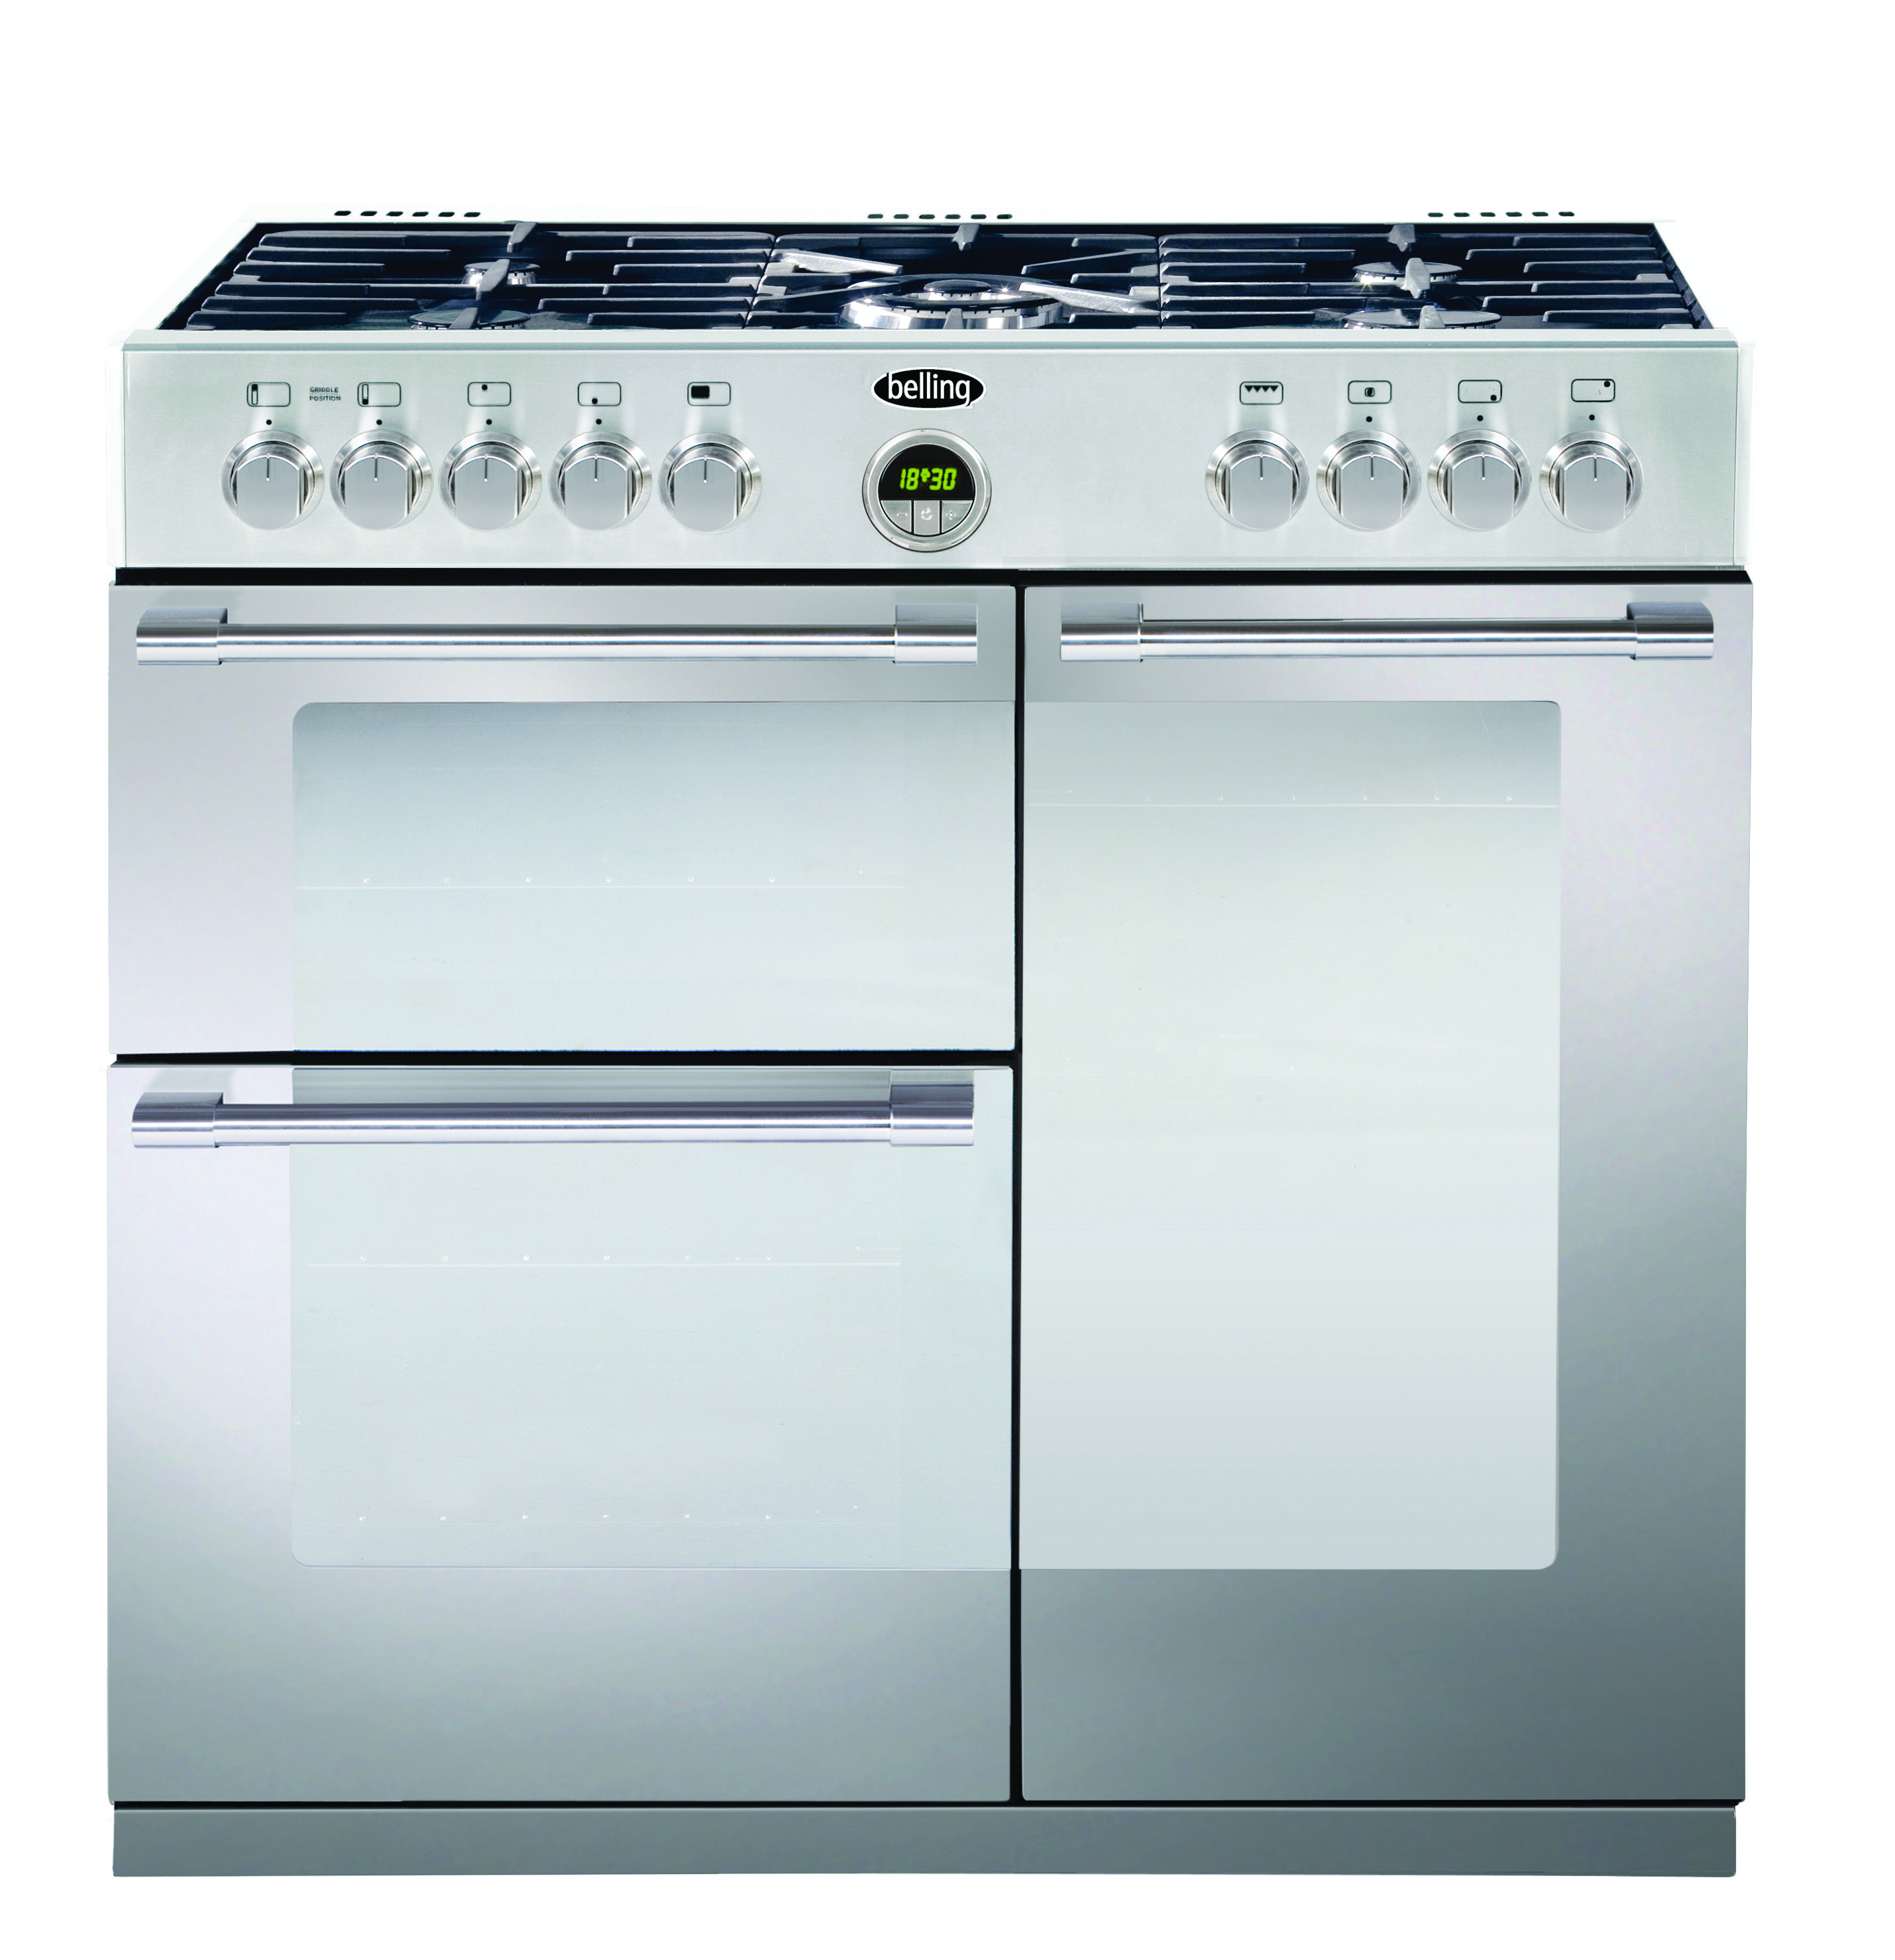 the 90cm dual fuel range cooker has the best of both worlds a mul